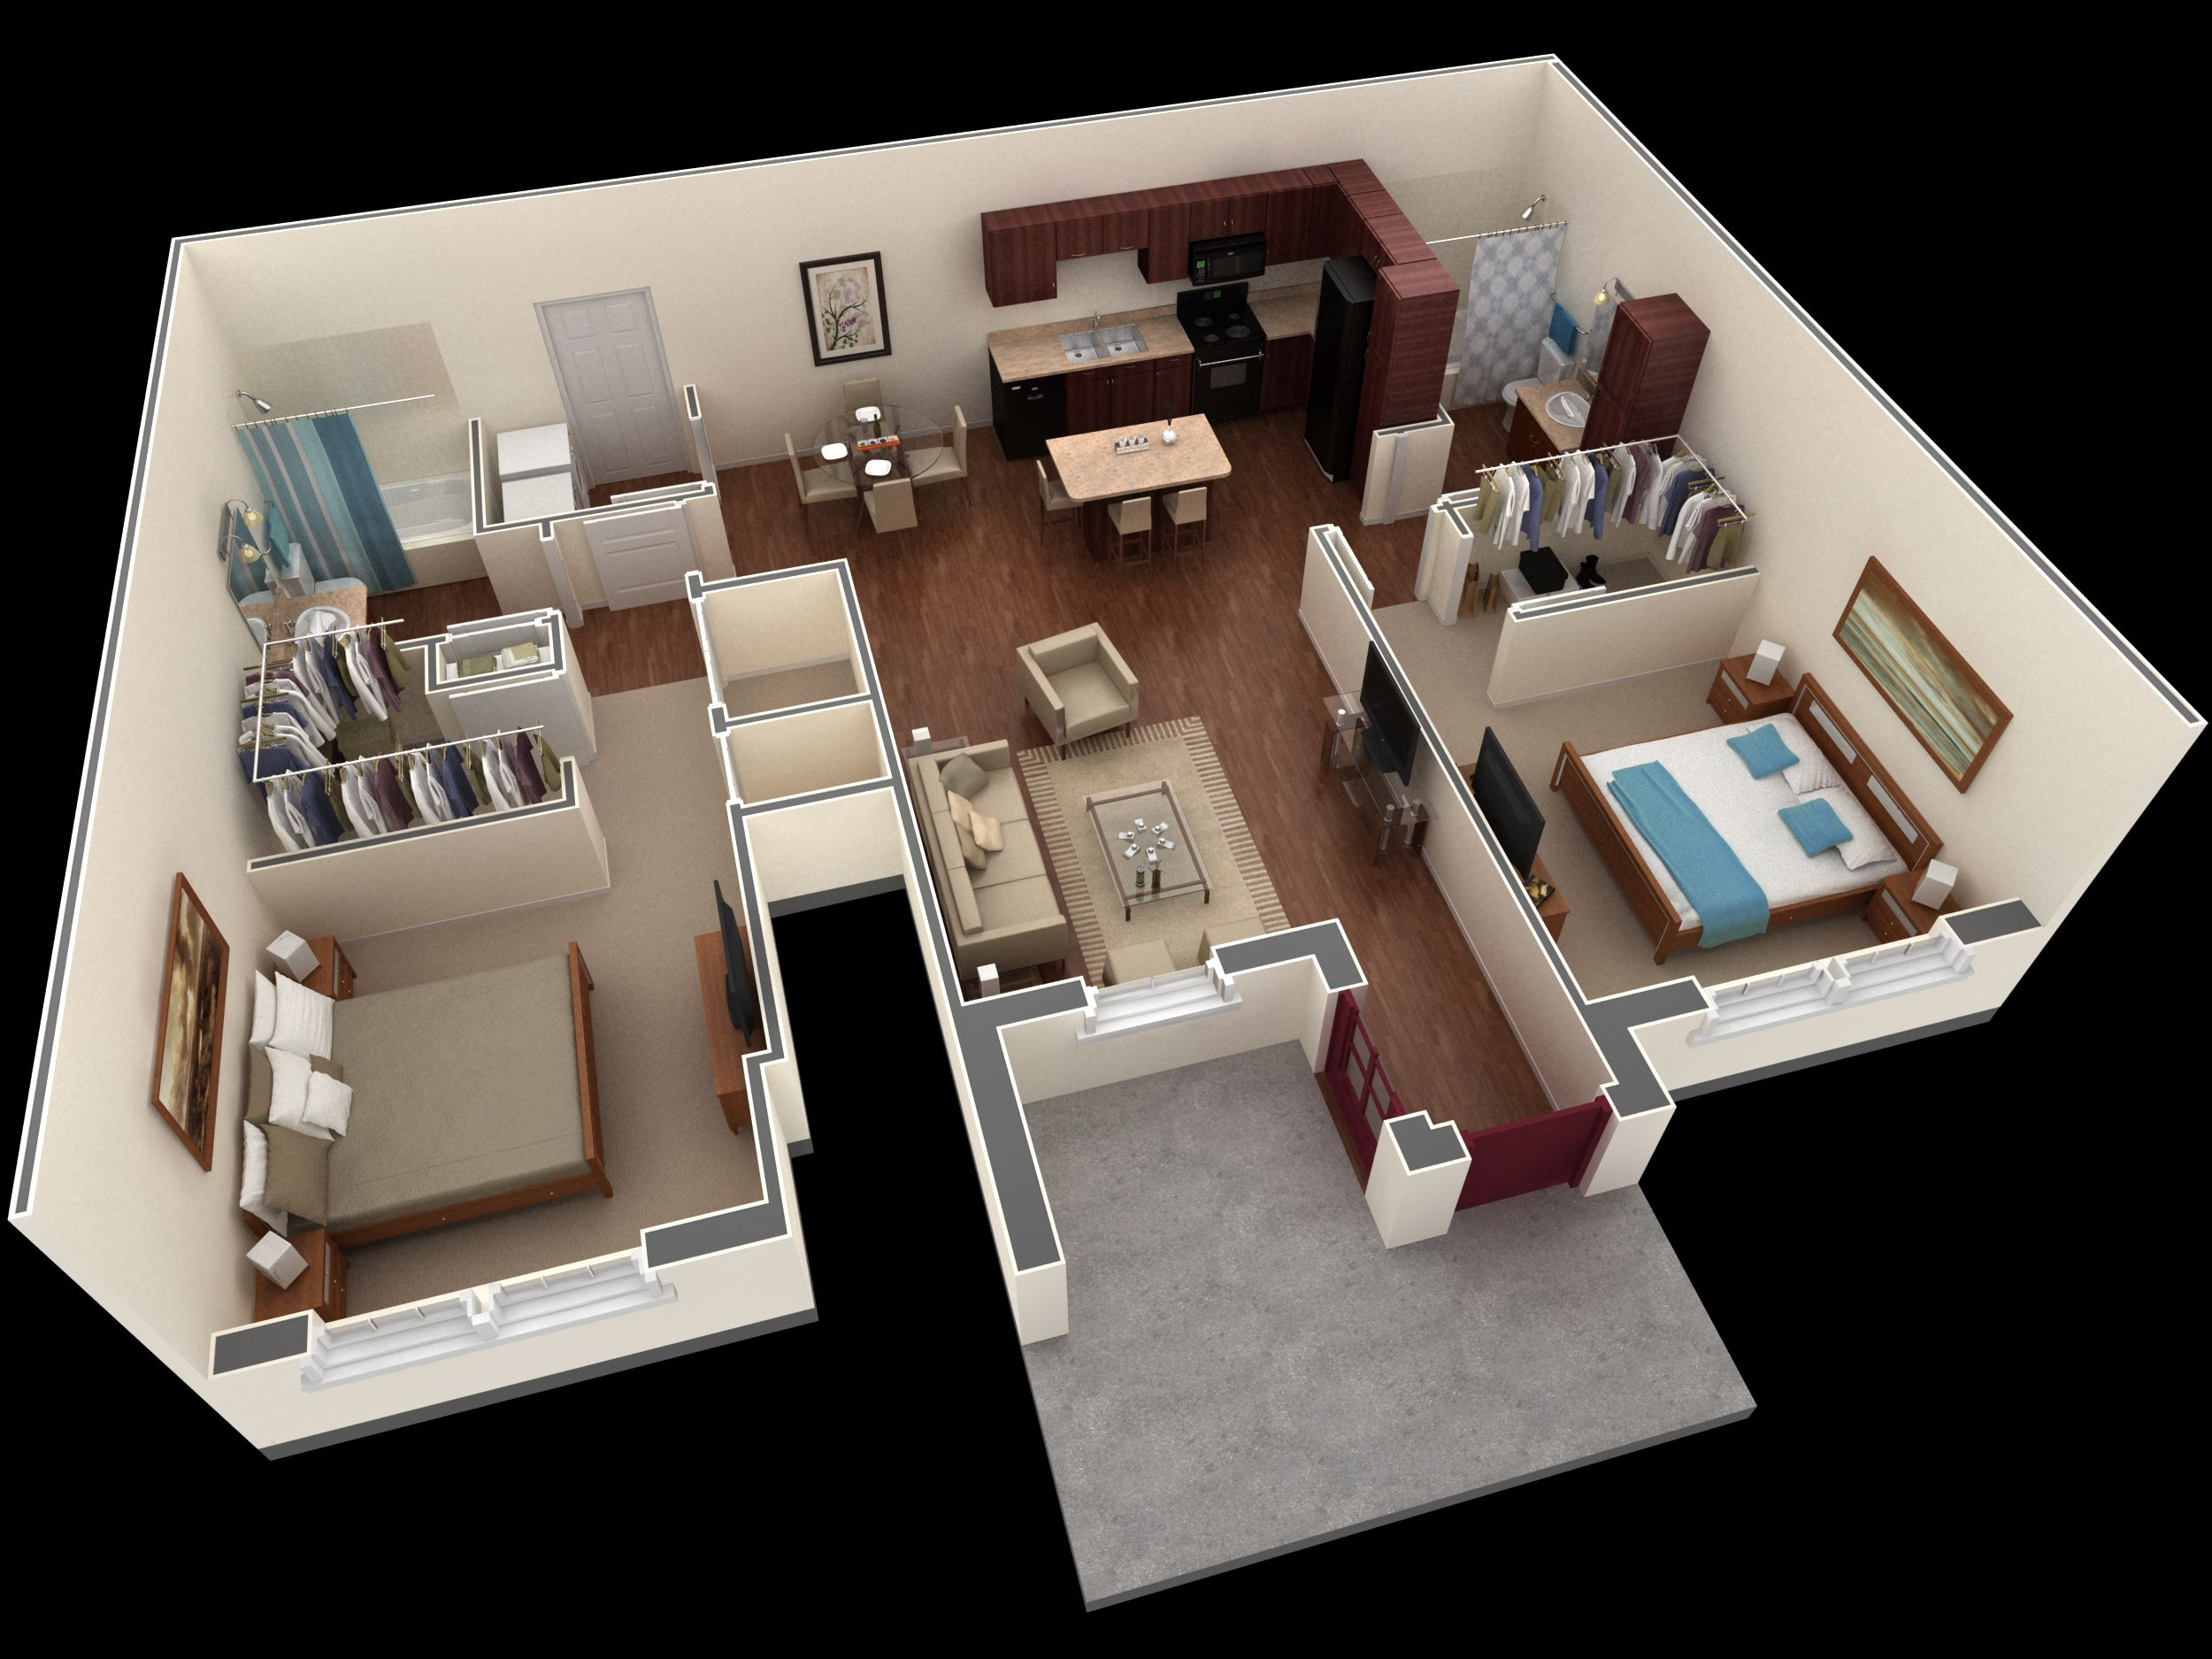 2 bedroom, 2 bath 1137 sf apartment at Springs at Legacy Commons ...